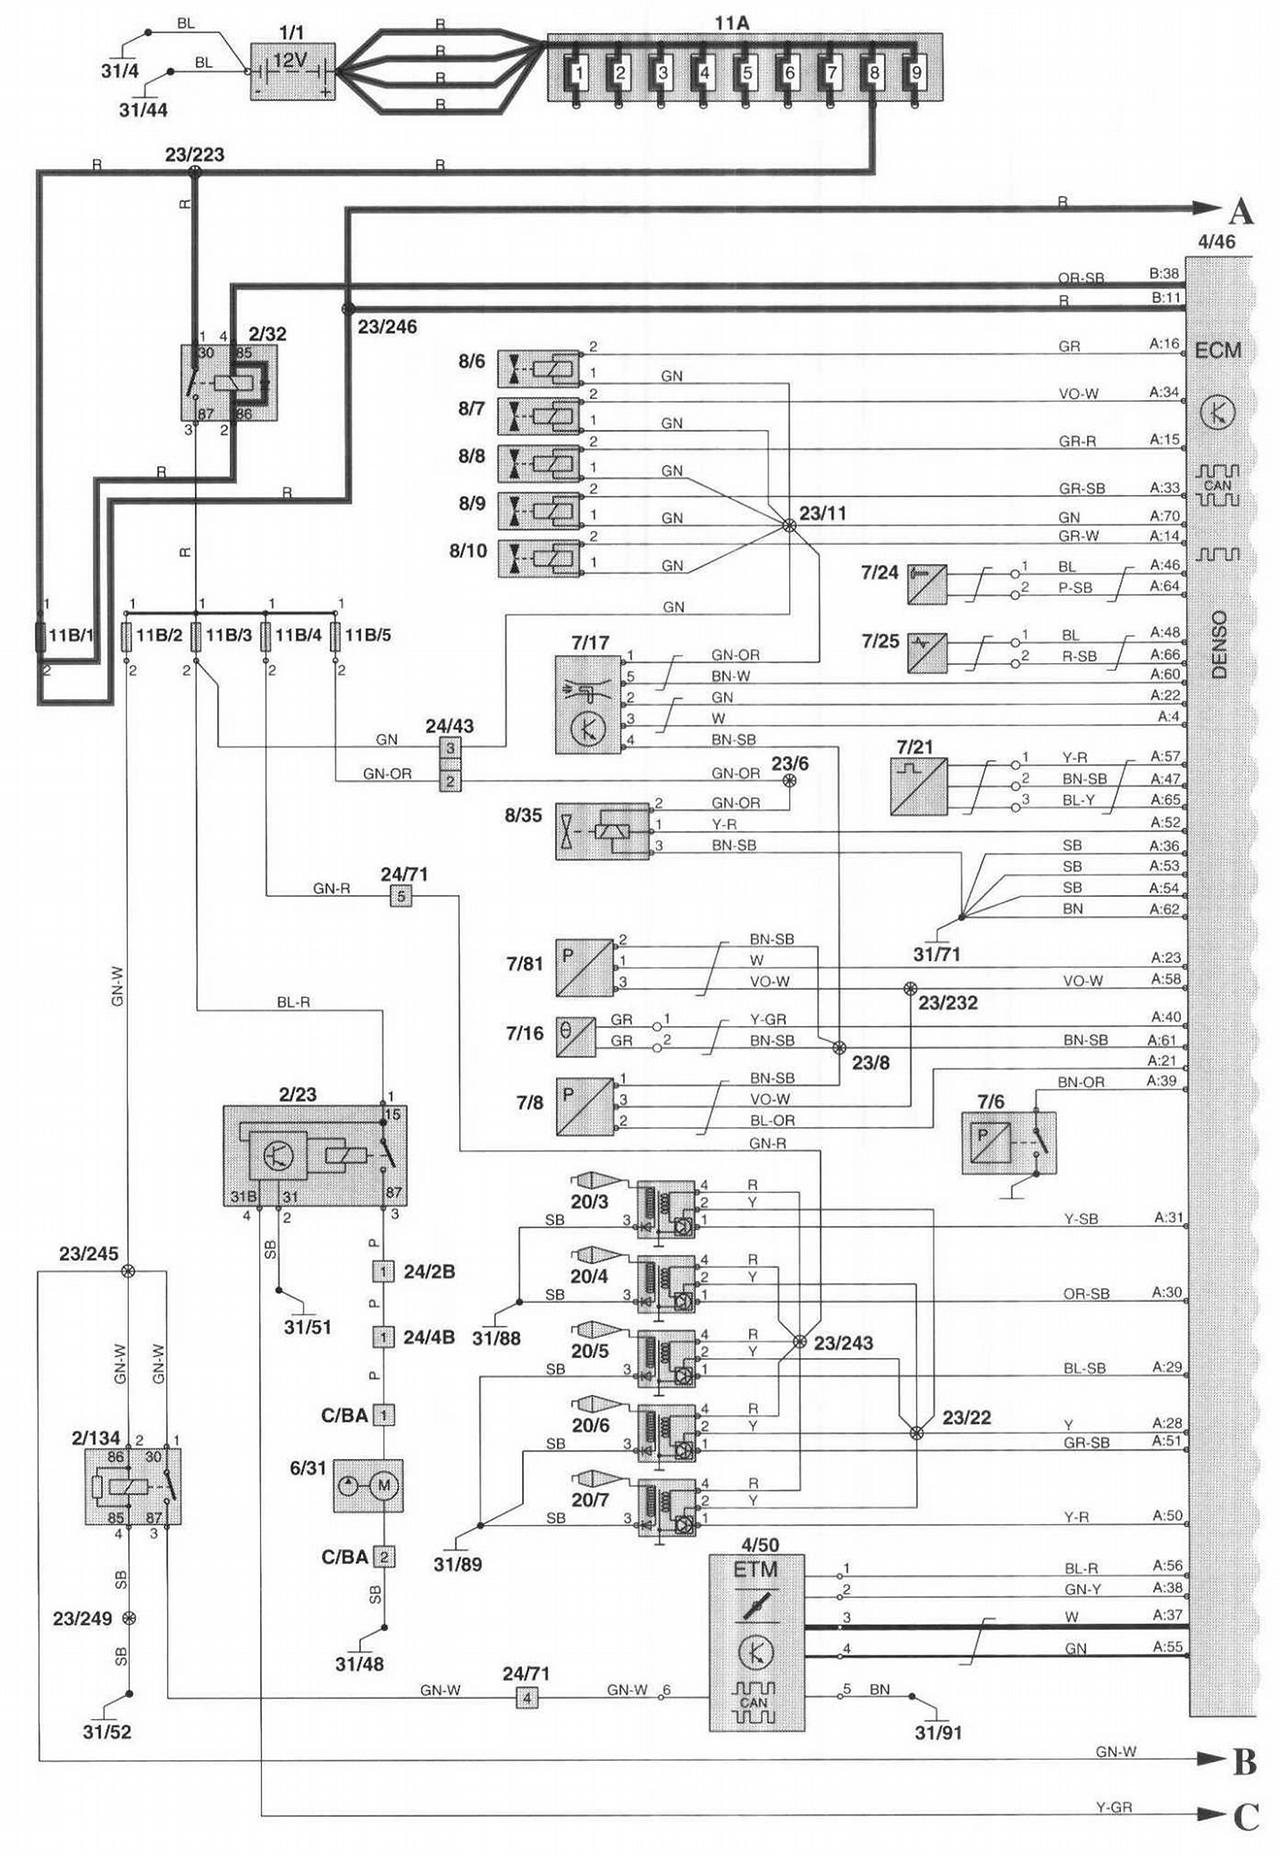 Volvo Vnl670 Wiring Diagram - Wiring Pin Diagram -  tos30.karo-wong-liyo.jeanjaures37.fr | Volvo 630 Wiring Diagram |  | Wiring Diagram Resource